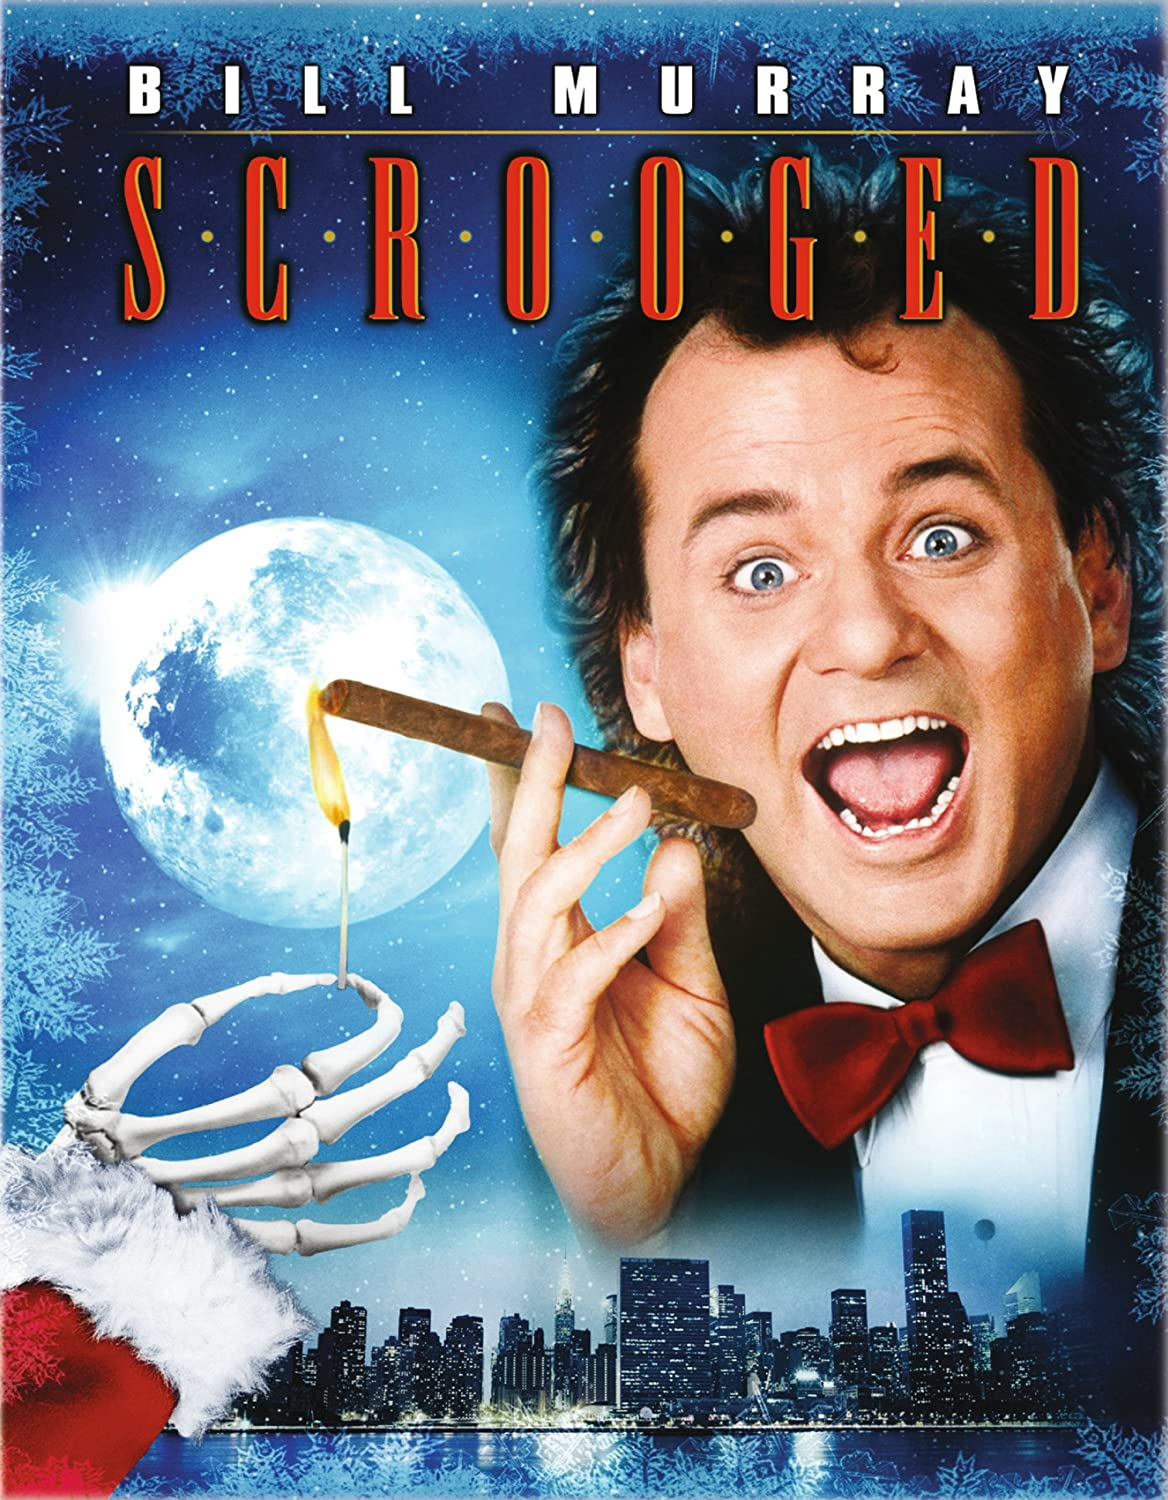 Amazon.com: Scrooged [Blu-ray]: Murray, Allen, Forsythe: Movies & TV